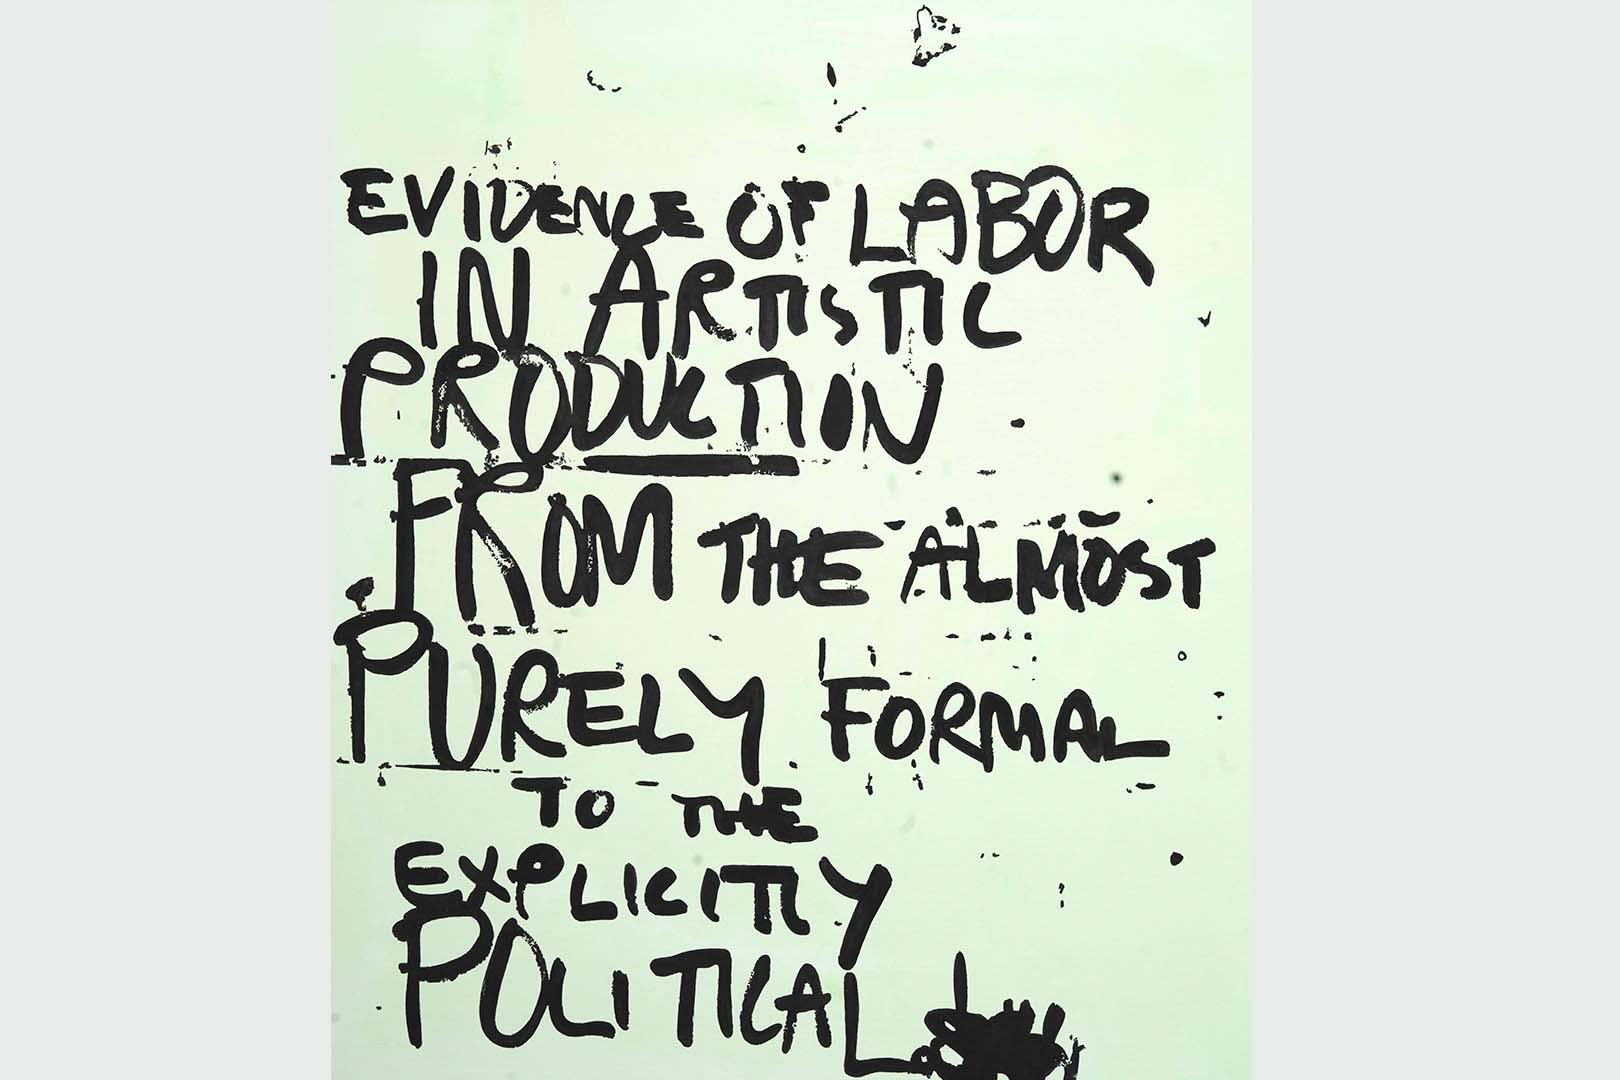 Evidence of Labour3_Thomas Elovsson copy